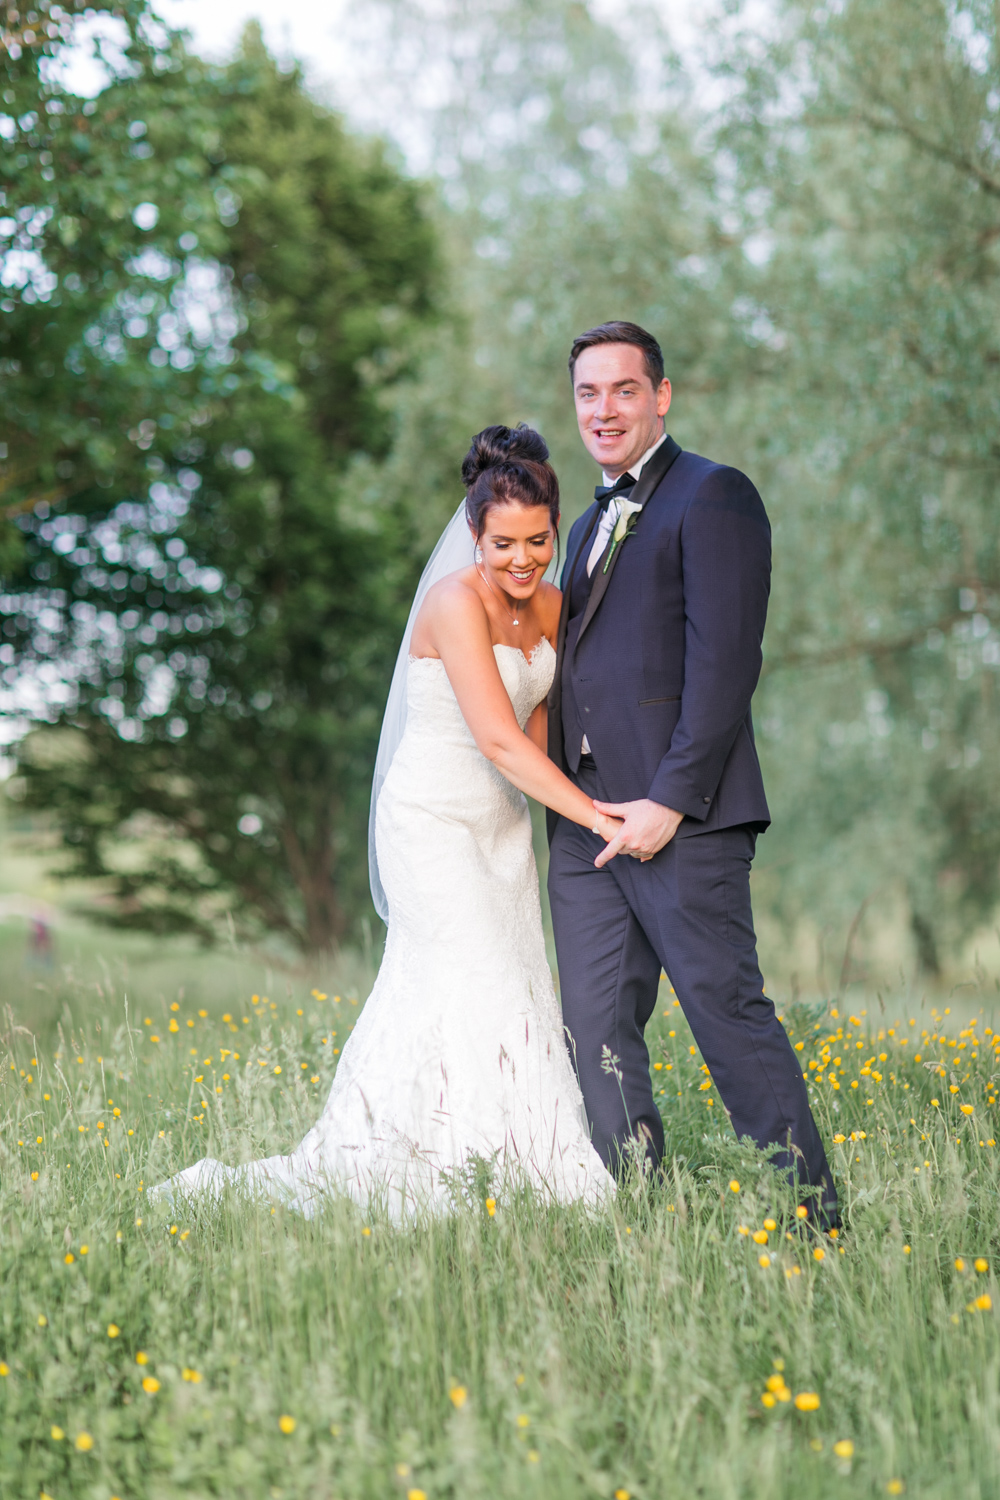 bride laughing beside her groom in a meadow full of yellow flowers